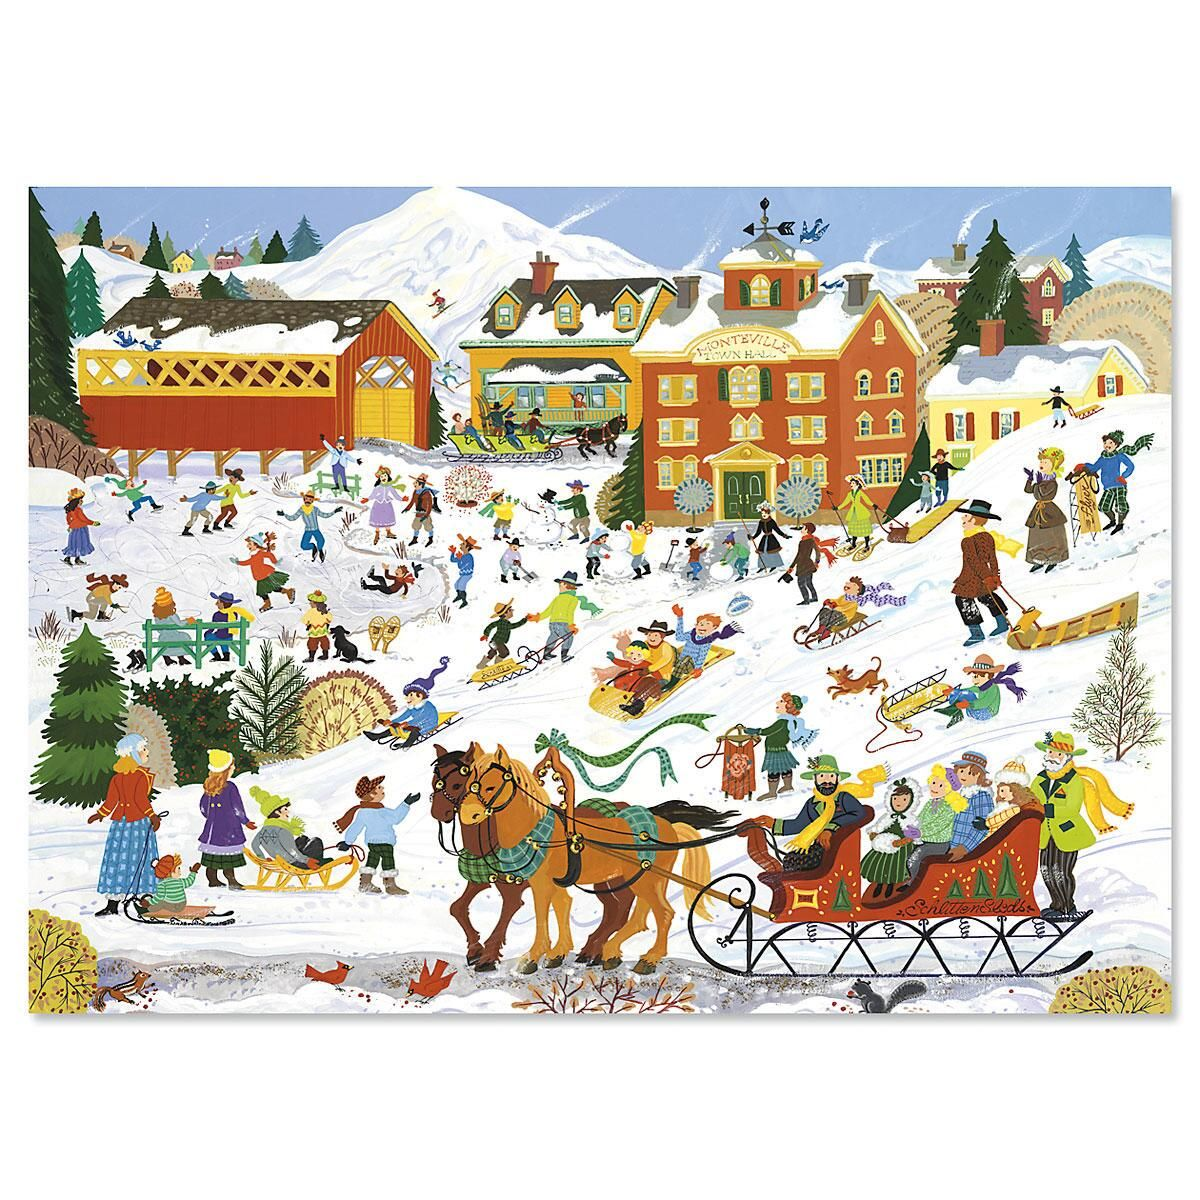 Winter Sports Personalized Christmas Cards - Set of 72